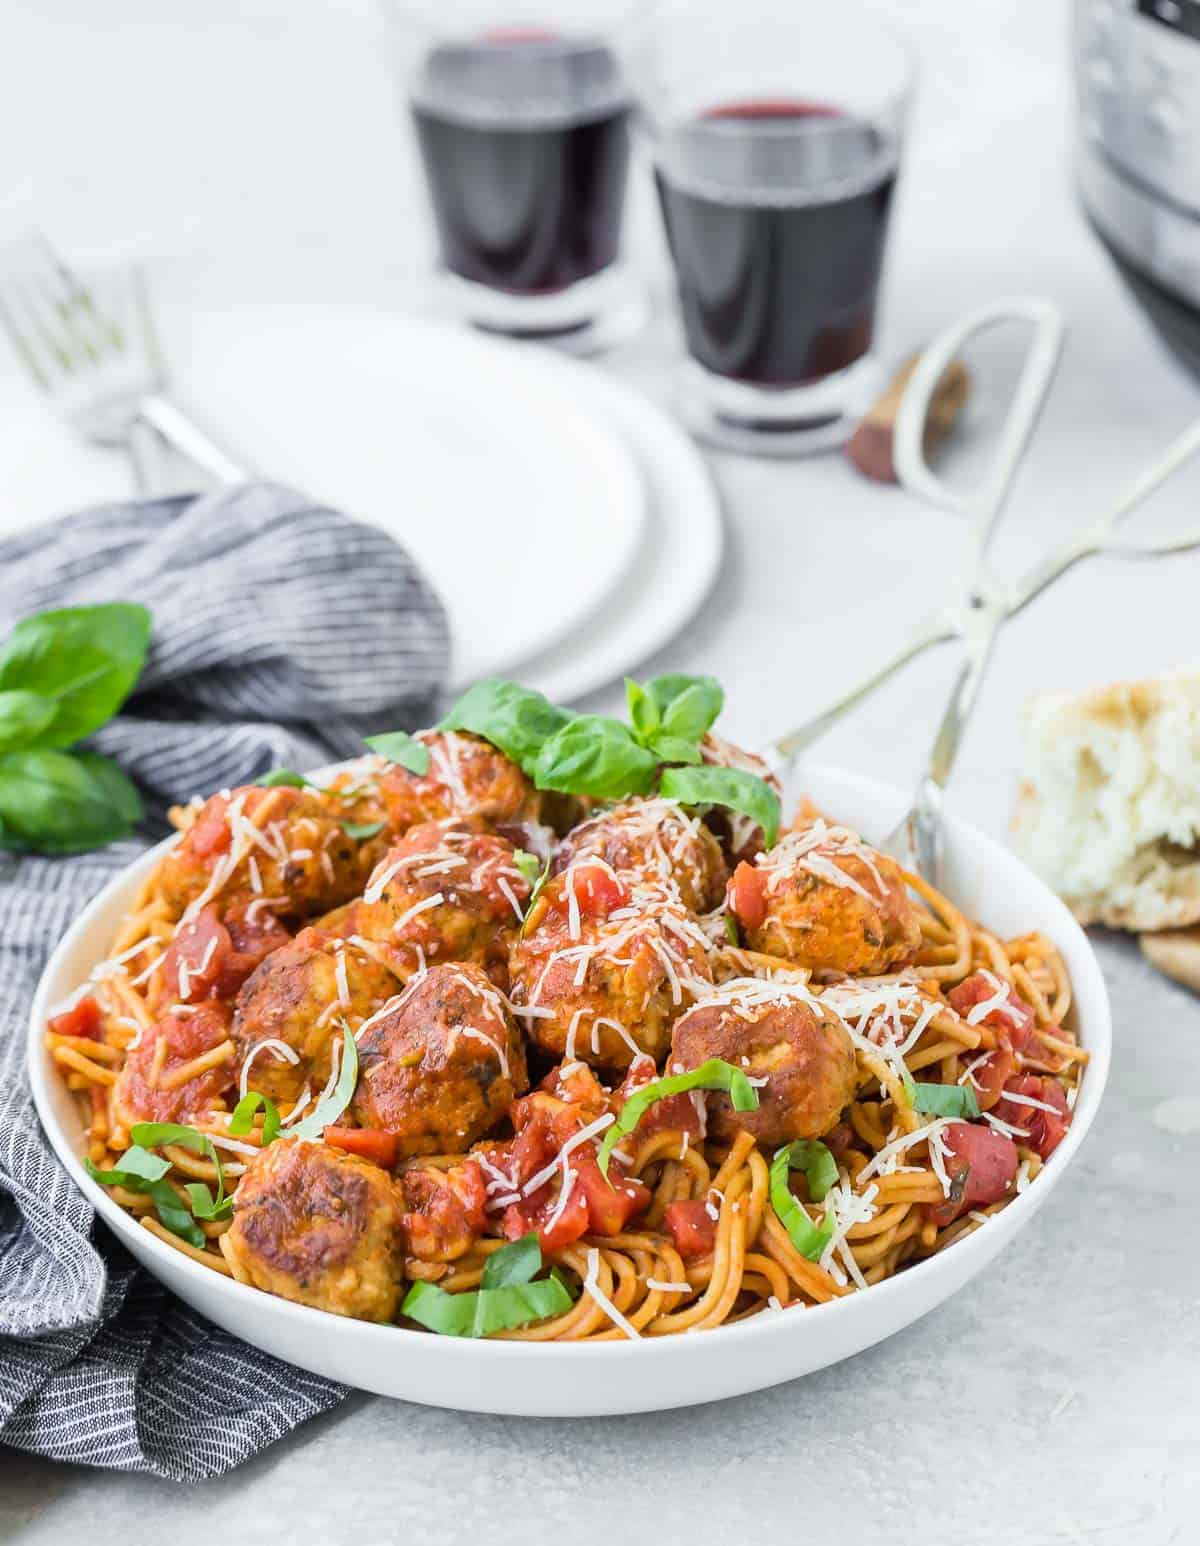 Spaghetti and meatballs with two glasses of wine in the backgorund.